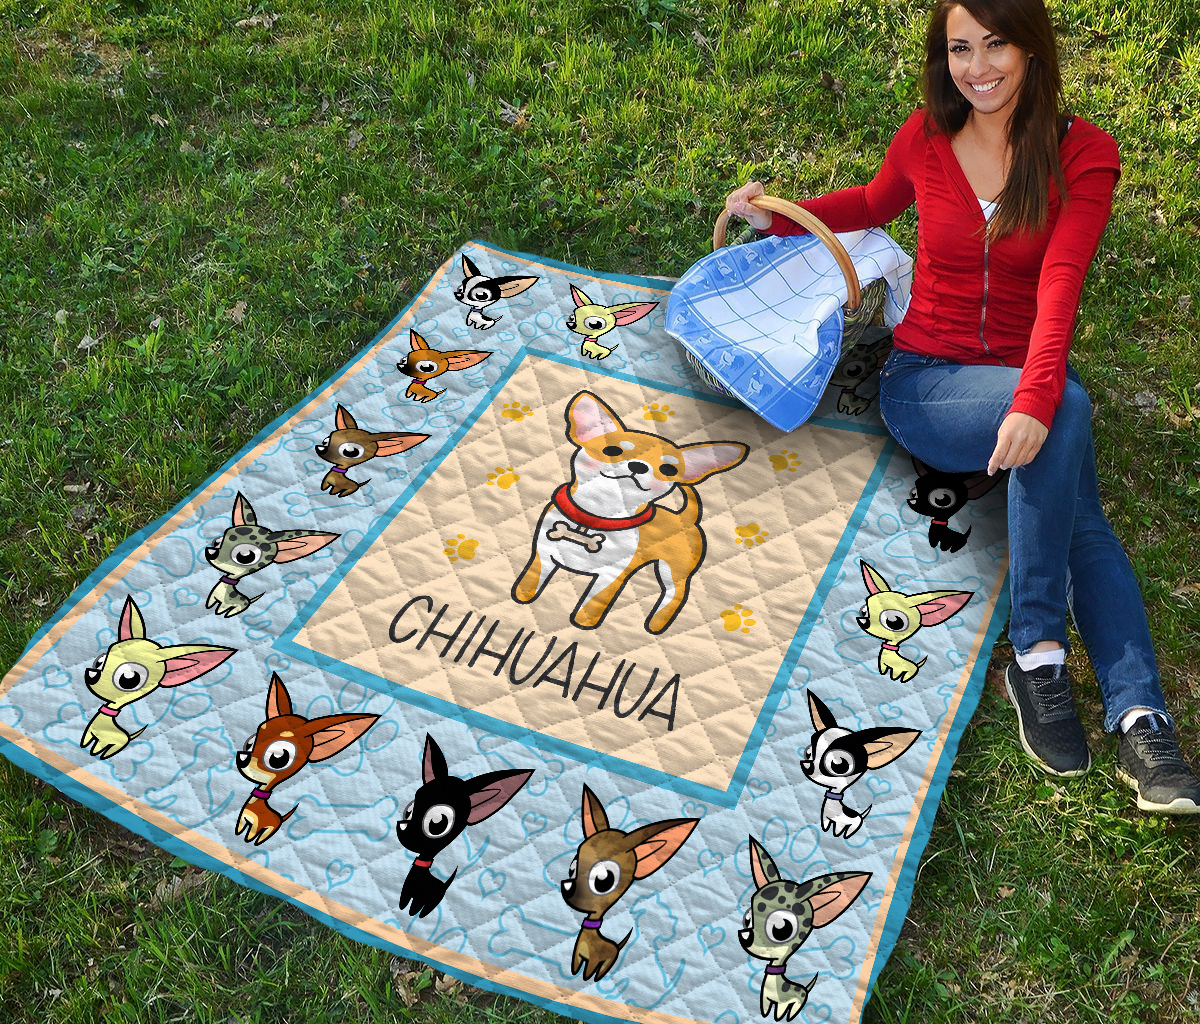 Baby chihuahua quilt 3